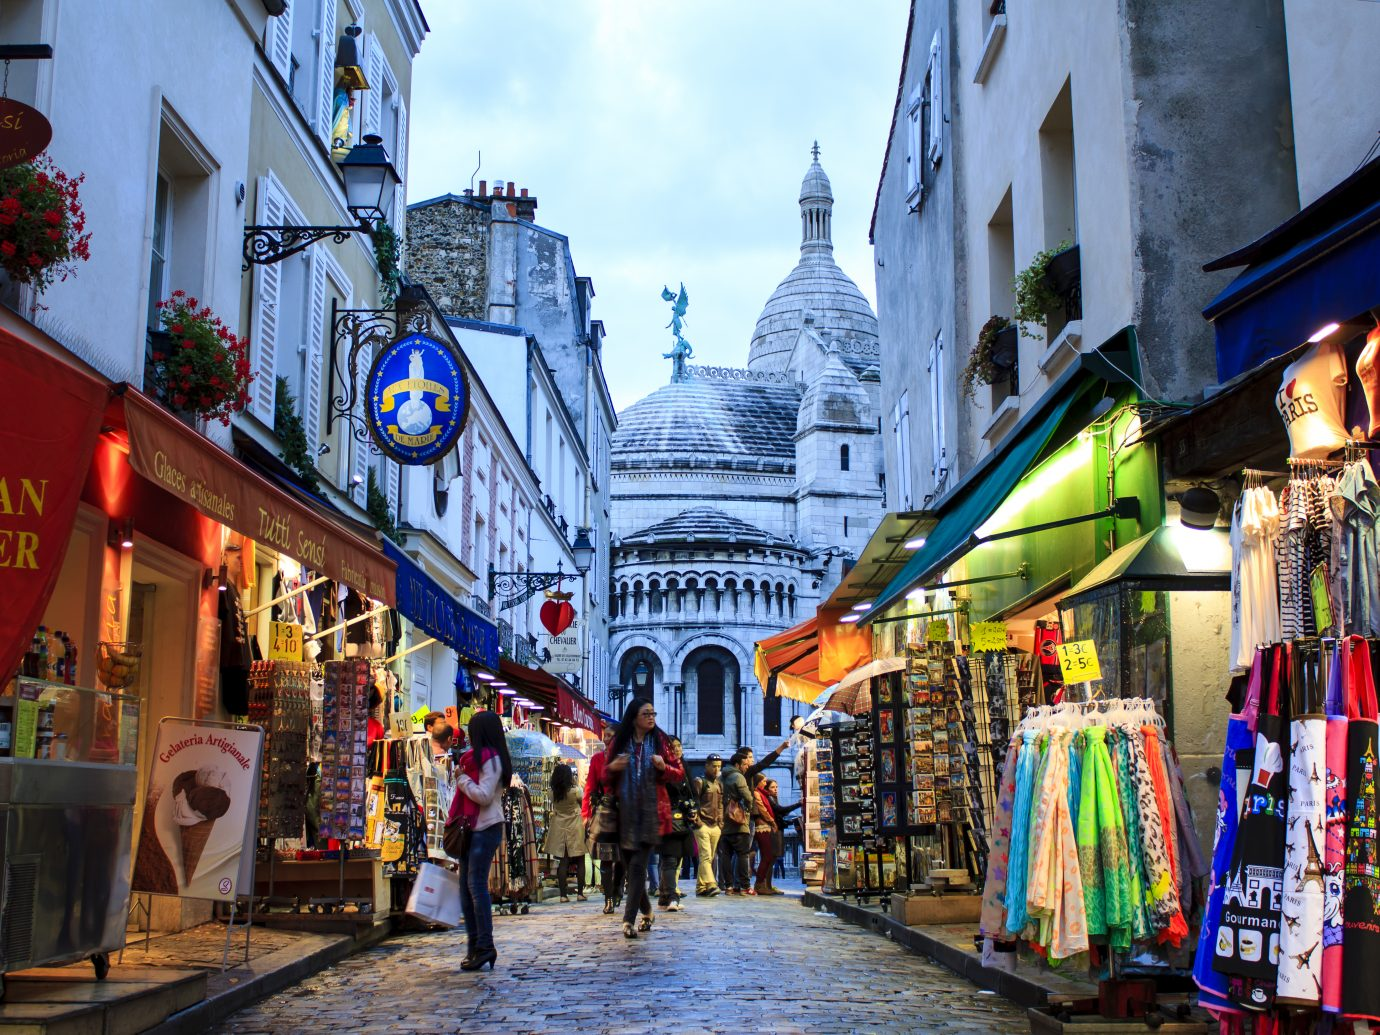 """Montmartre by twilight - tourists and Parisians walking around shopping street near Sacre Coeur."""""""